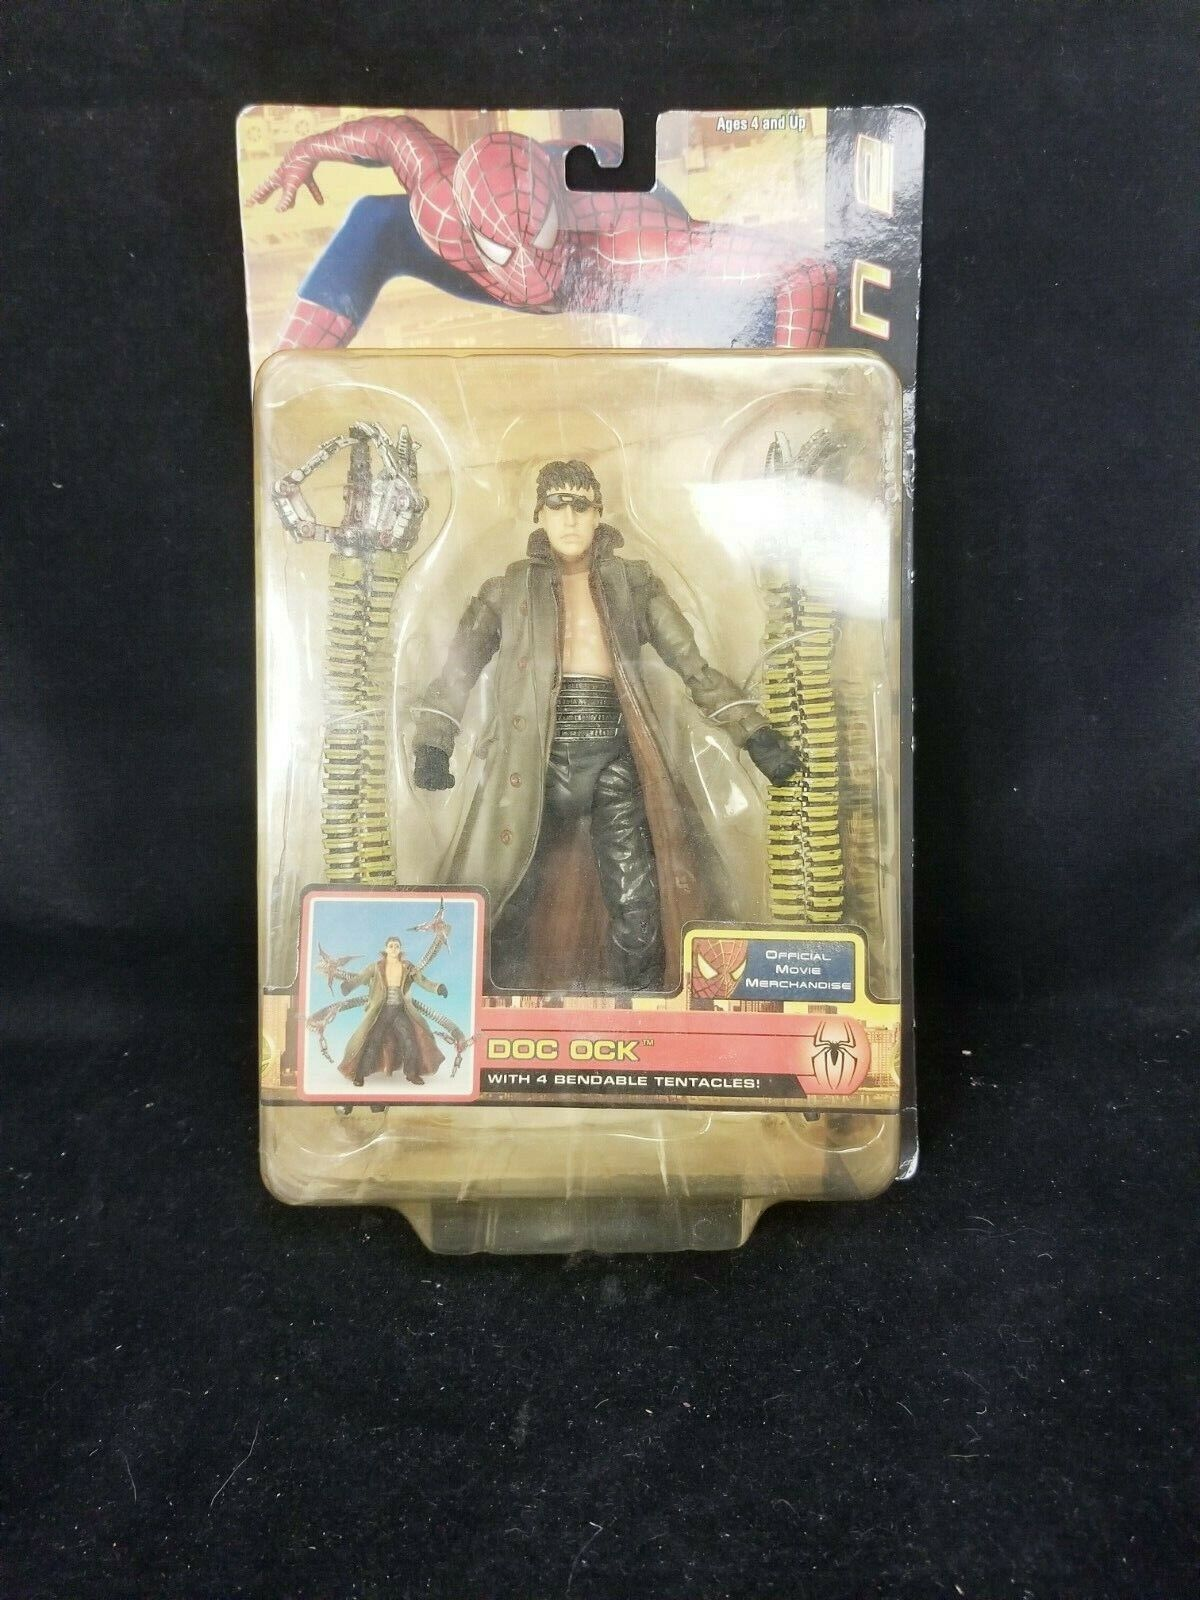 Spider-Man 2 Doc Ock with 4 Bendy Tentacles Action Figure